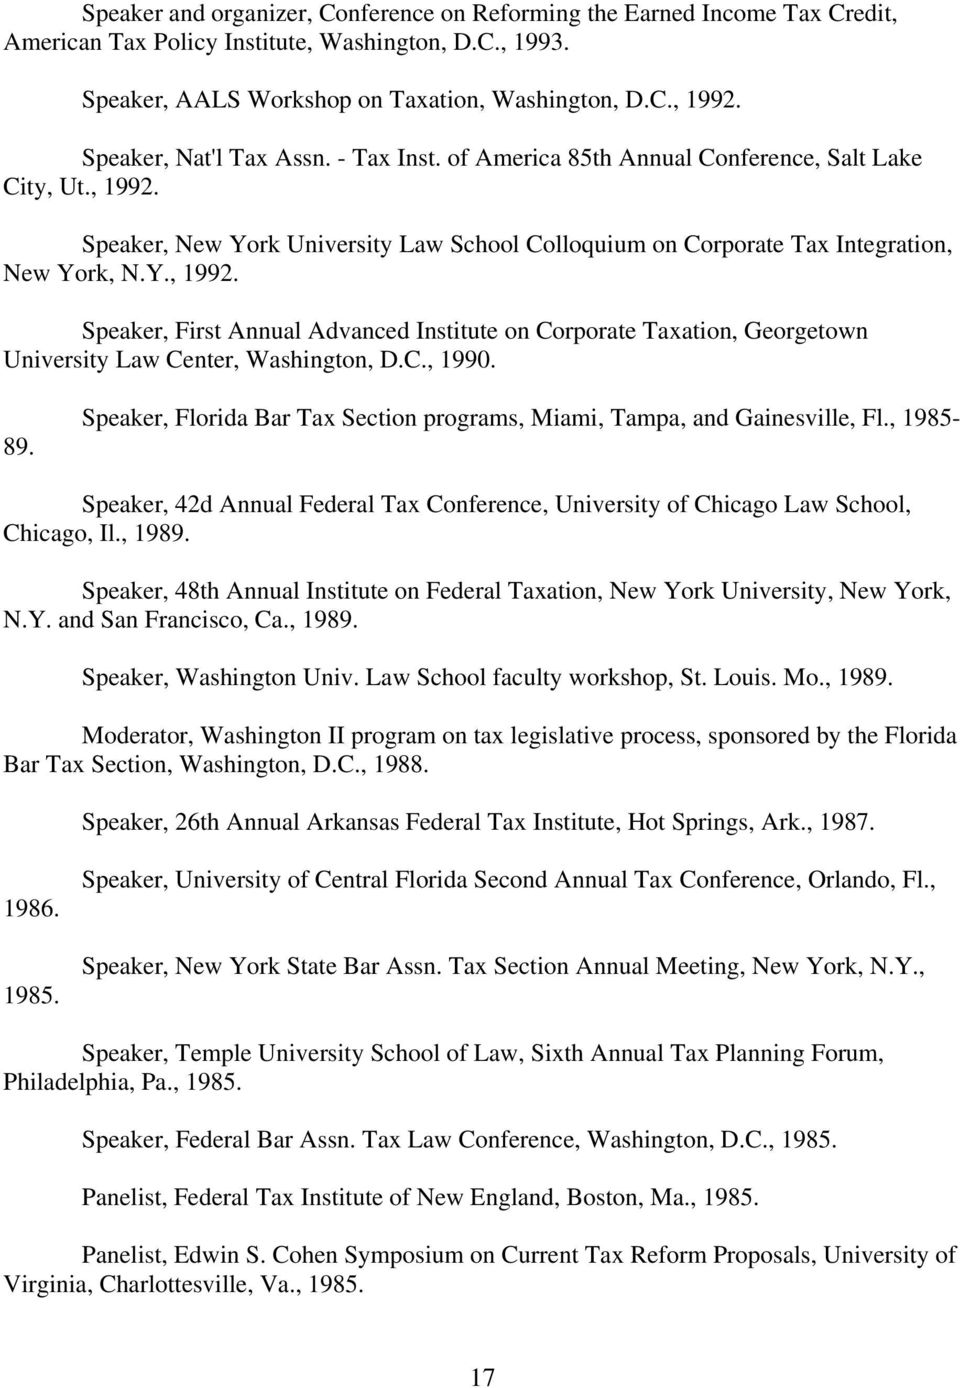 Speaker, New York University Law School Colloquium on Corporate Tax Integration, New York, N.Y., 1992.